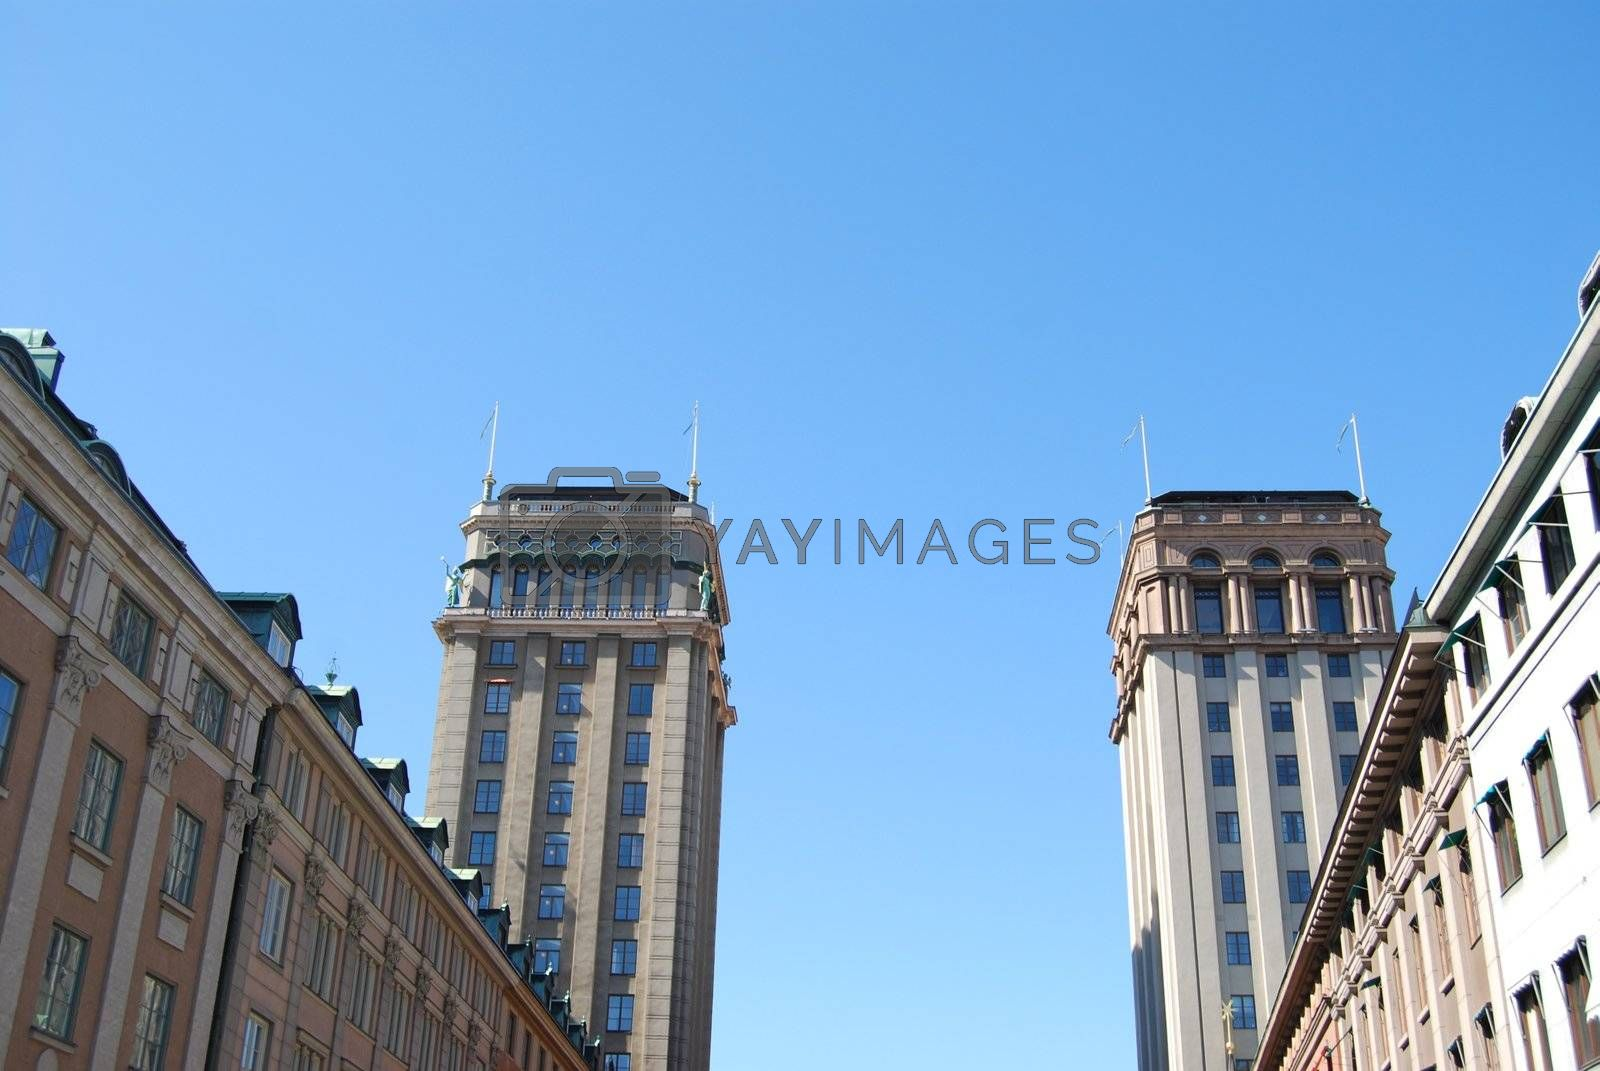 First highrisebuilding in Europe build in 1910 and 1920 kungsgatan in Stockholm